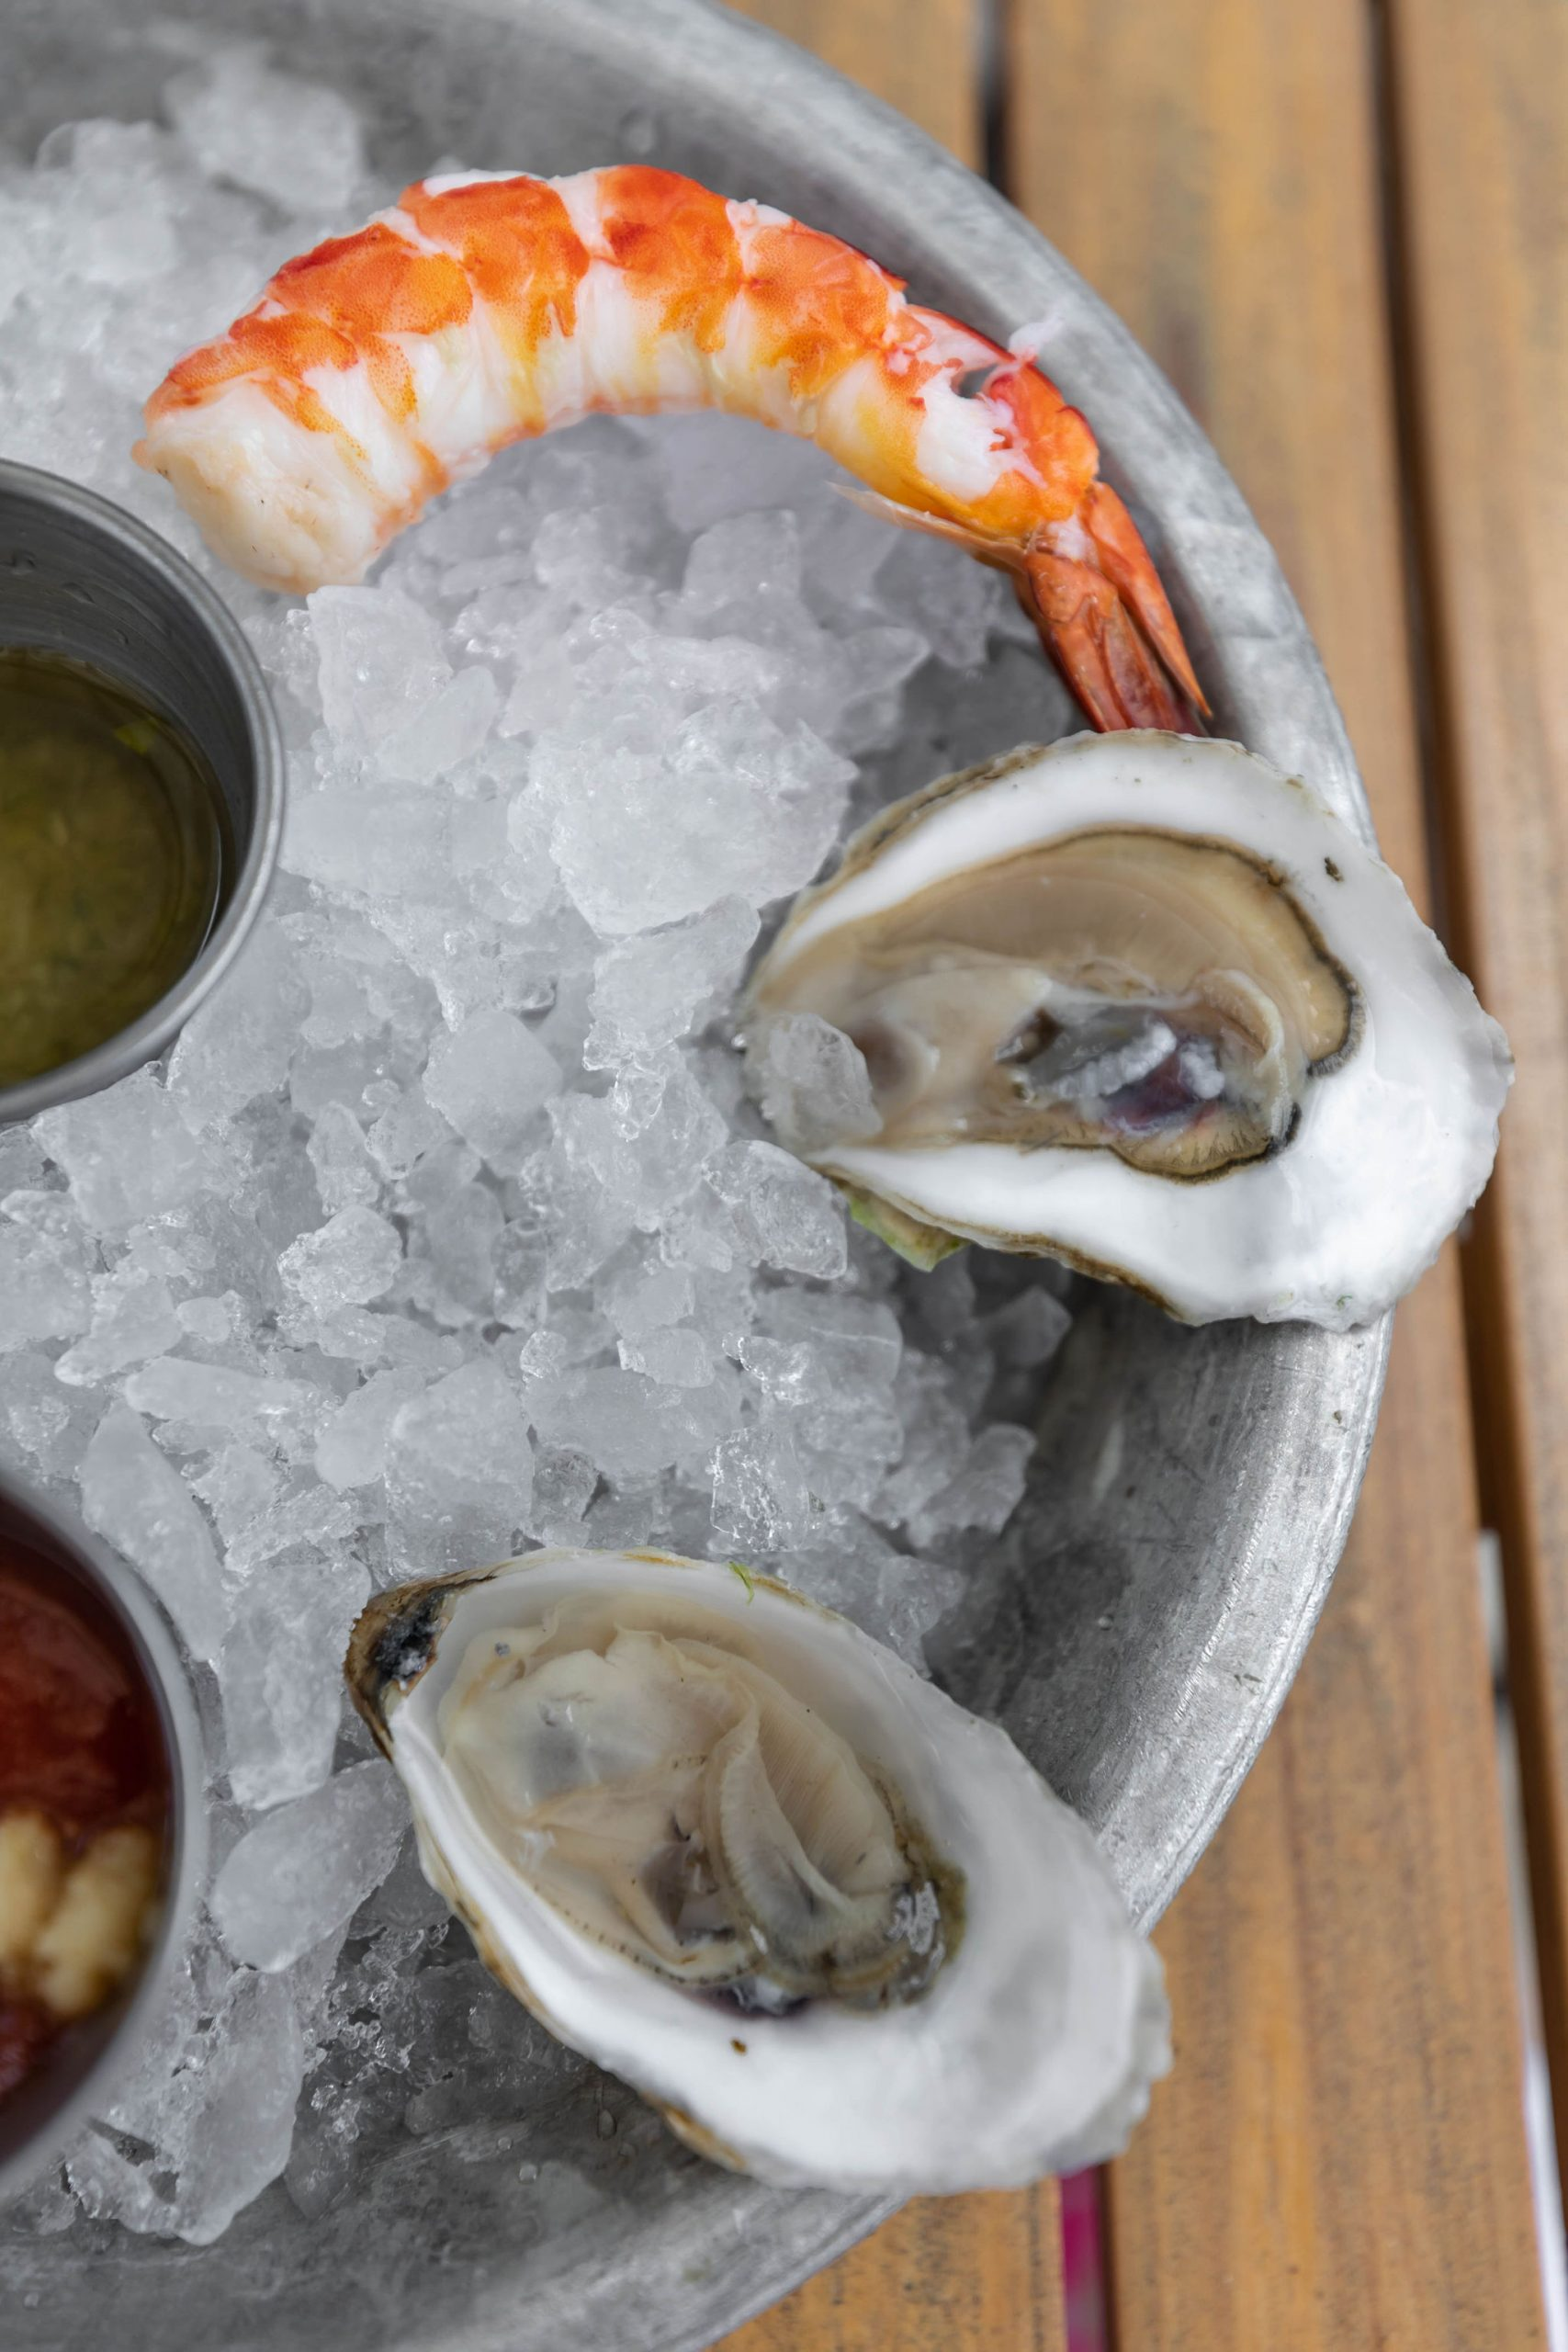 Oysters at Boathouse Restaurant at Disney Springs Orlando Florida Photographed by Annie Fairfax